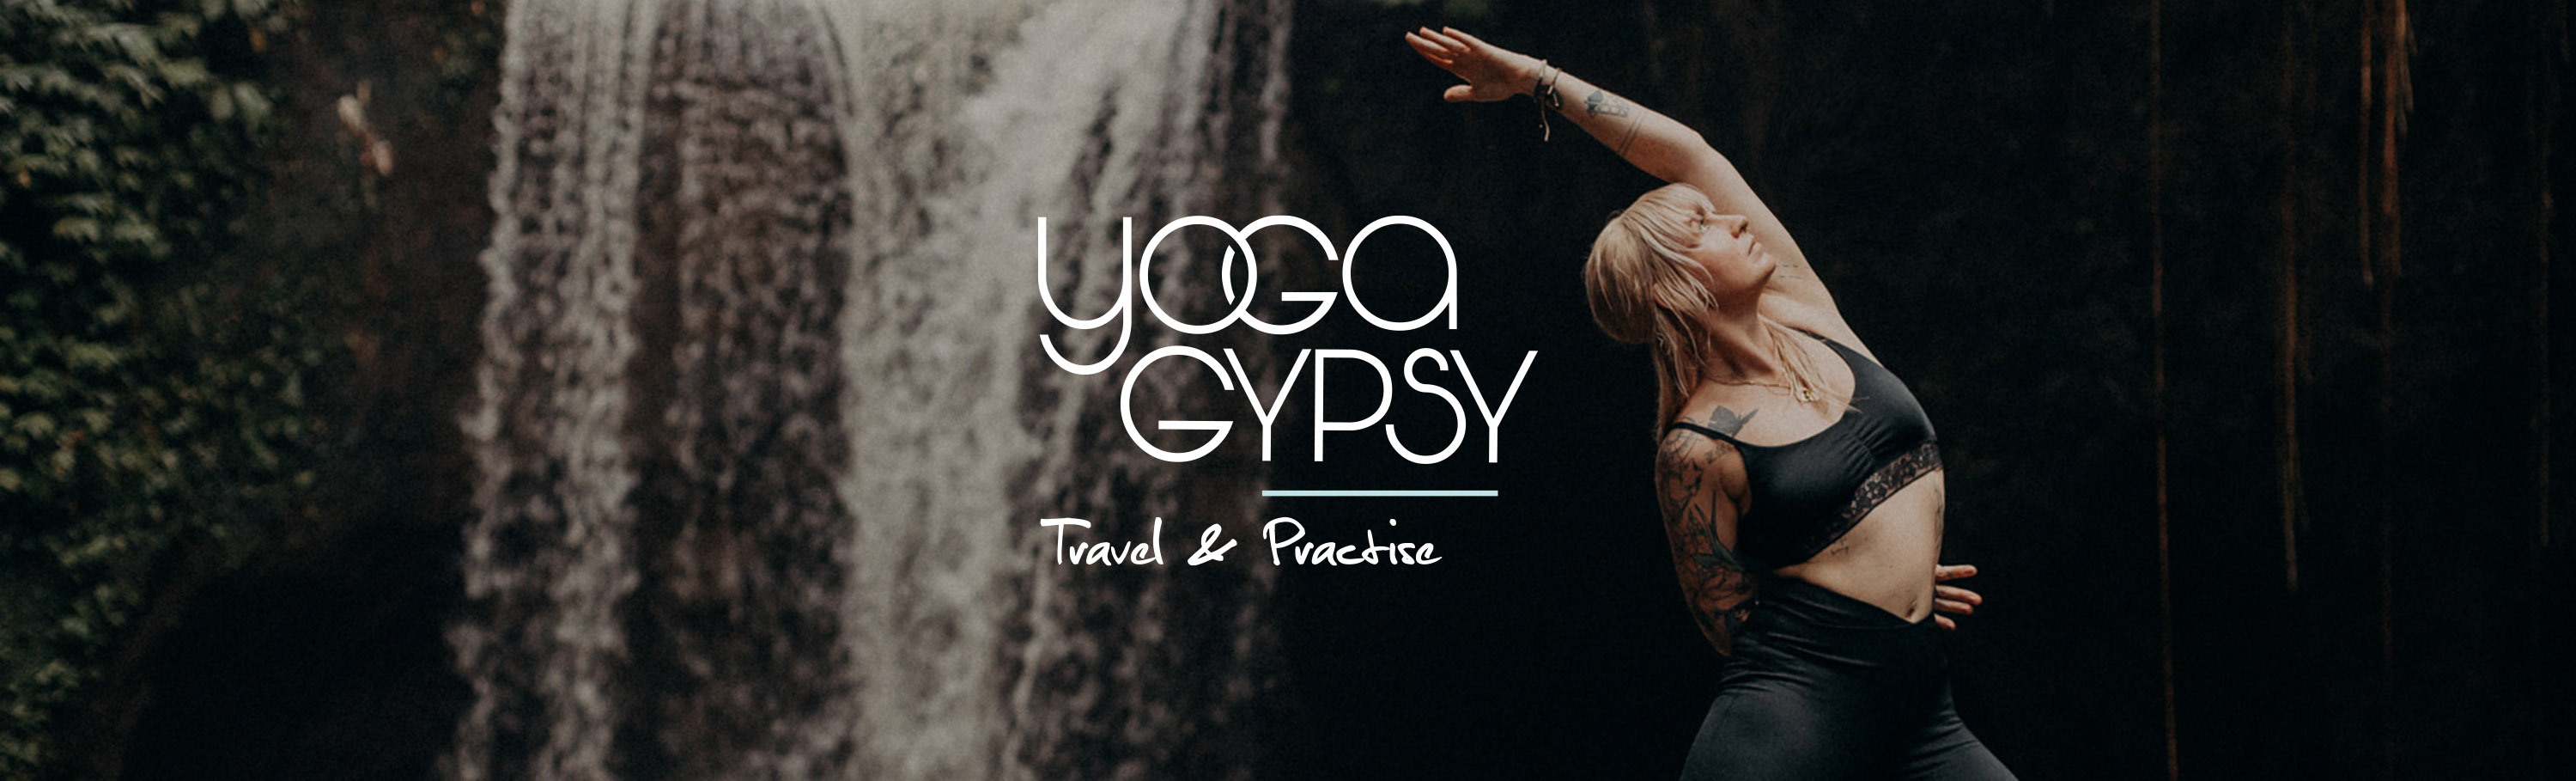 Yoga Gypsy Travel Practise Titelbild